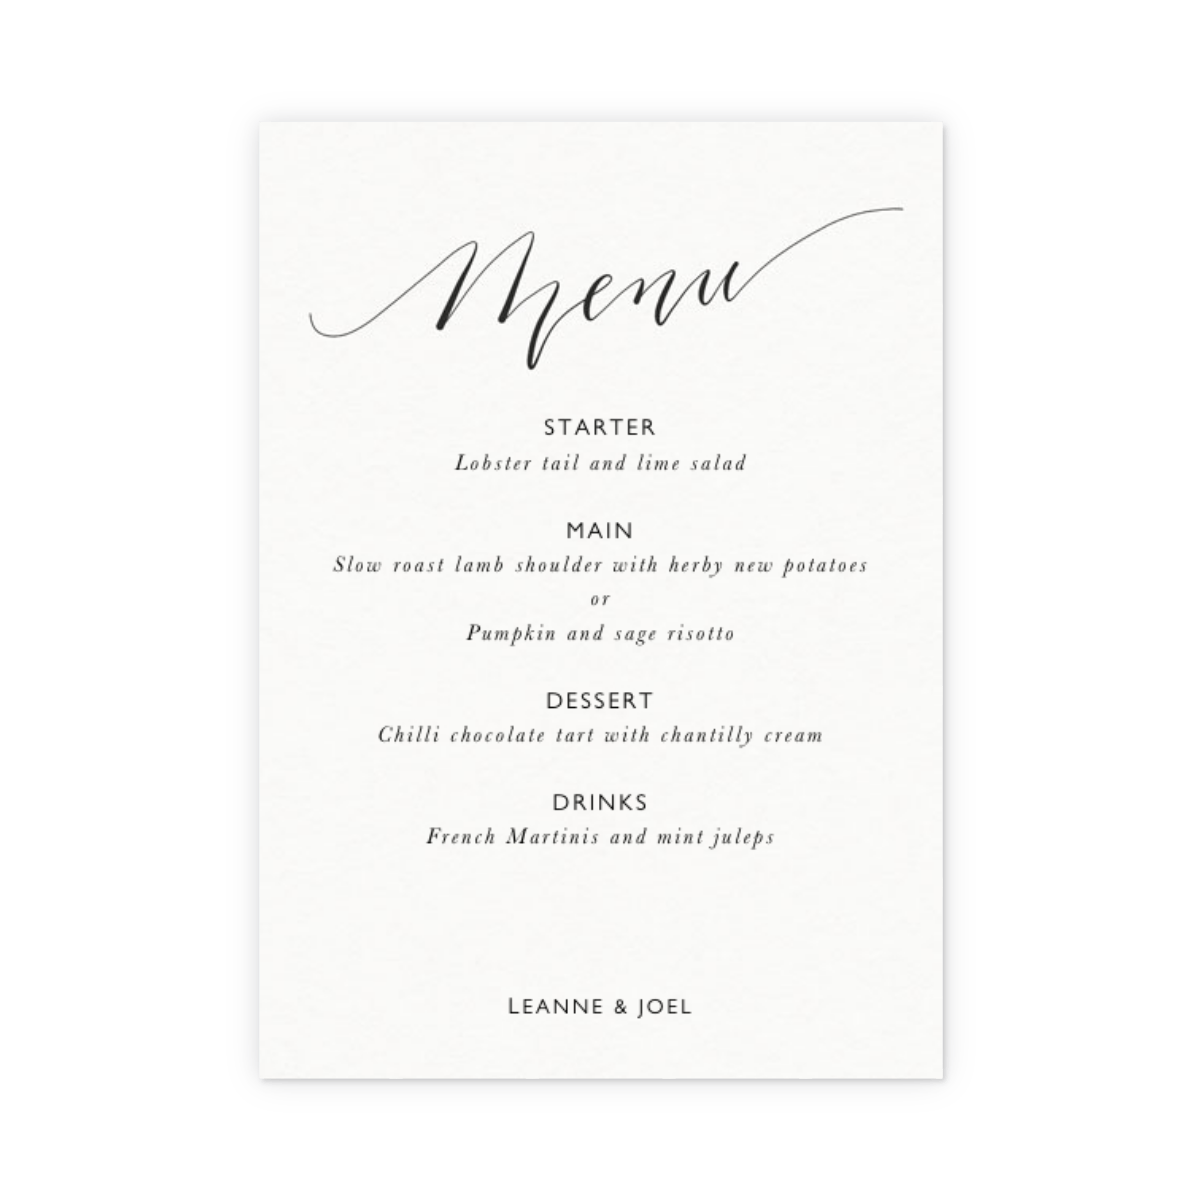 Https%3a%2f%2fwww.papier.com%2fproduct image%2f37208%2f4%2fcalligraphy menu 9366 front 1575048285.png?ixlib=rb 1.1